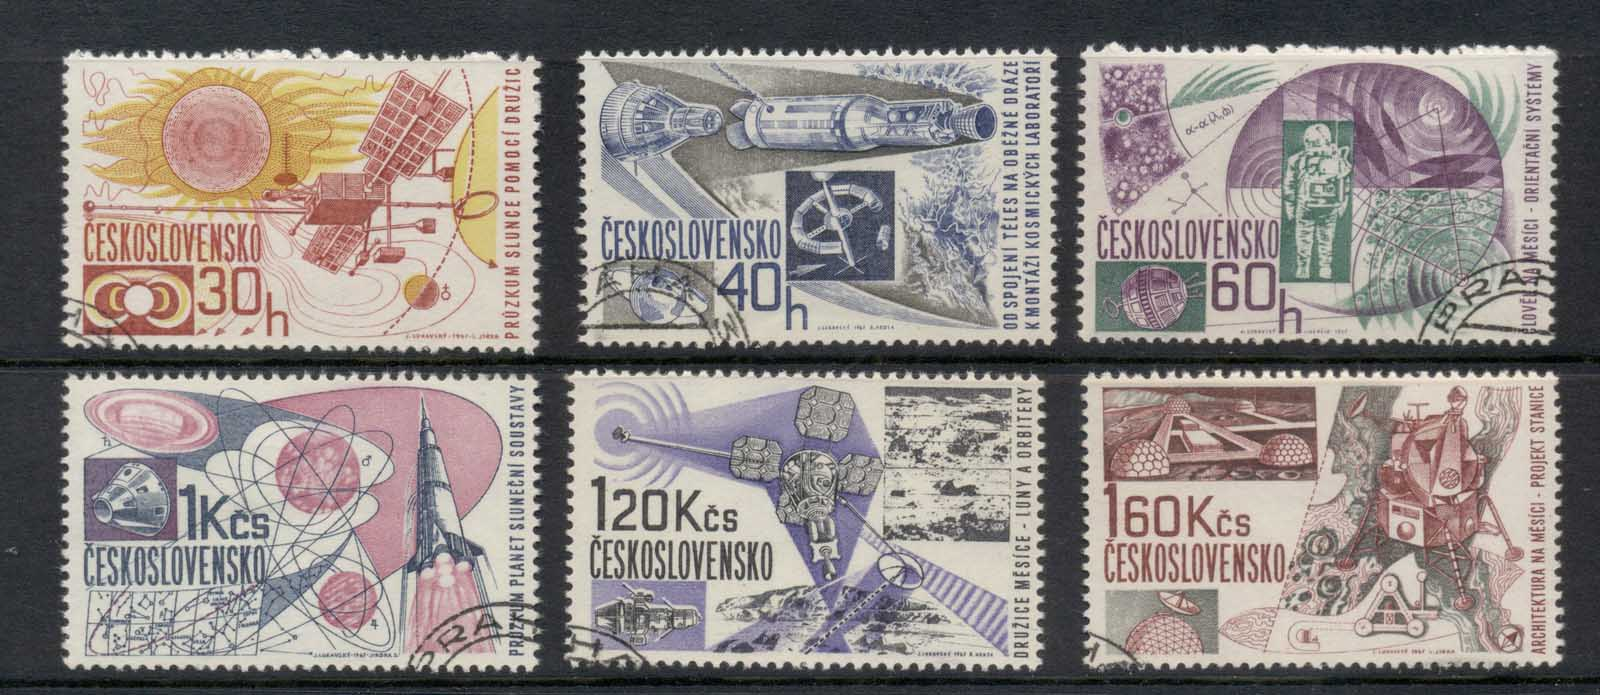 Czechoslovakia 1967 Space Research CTO